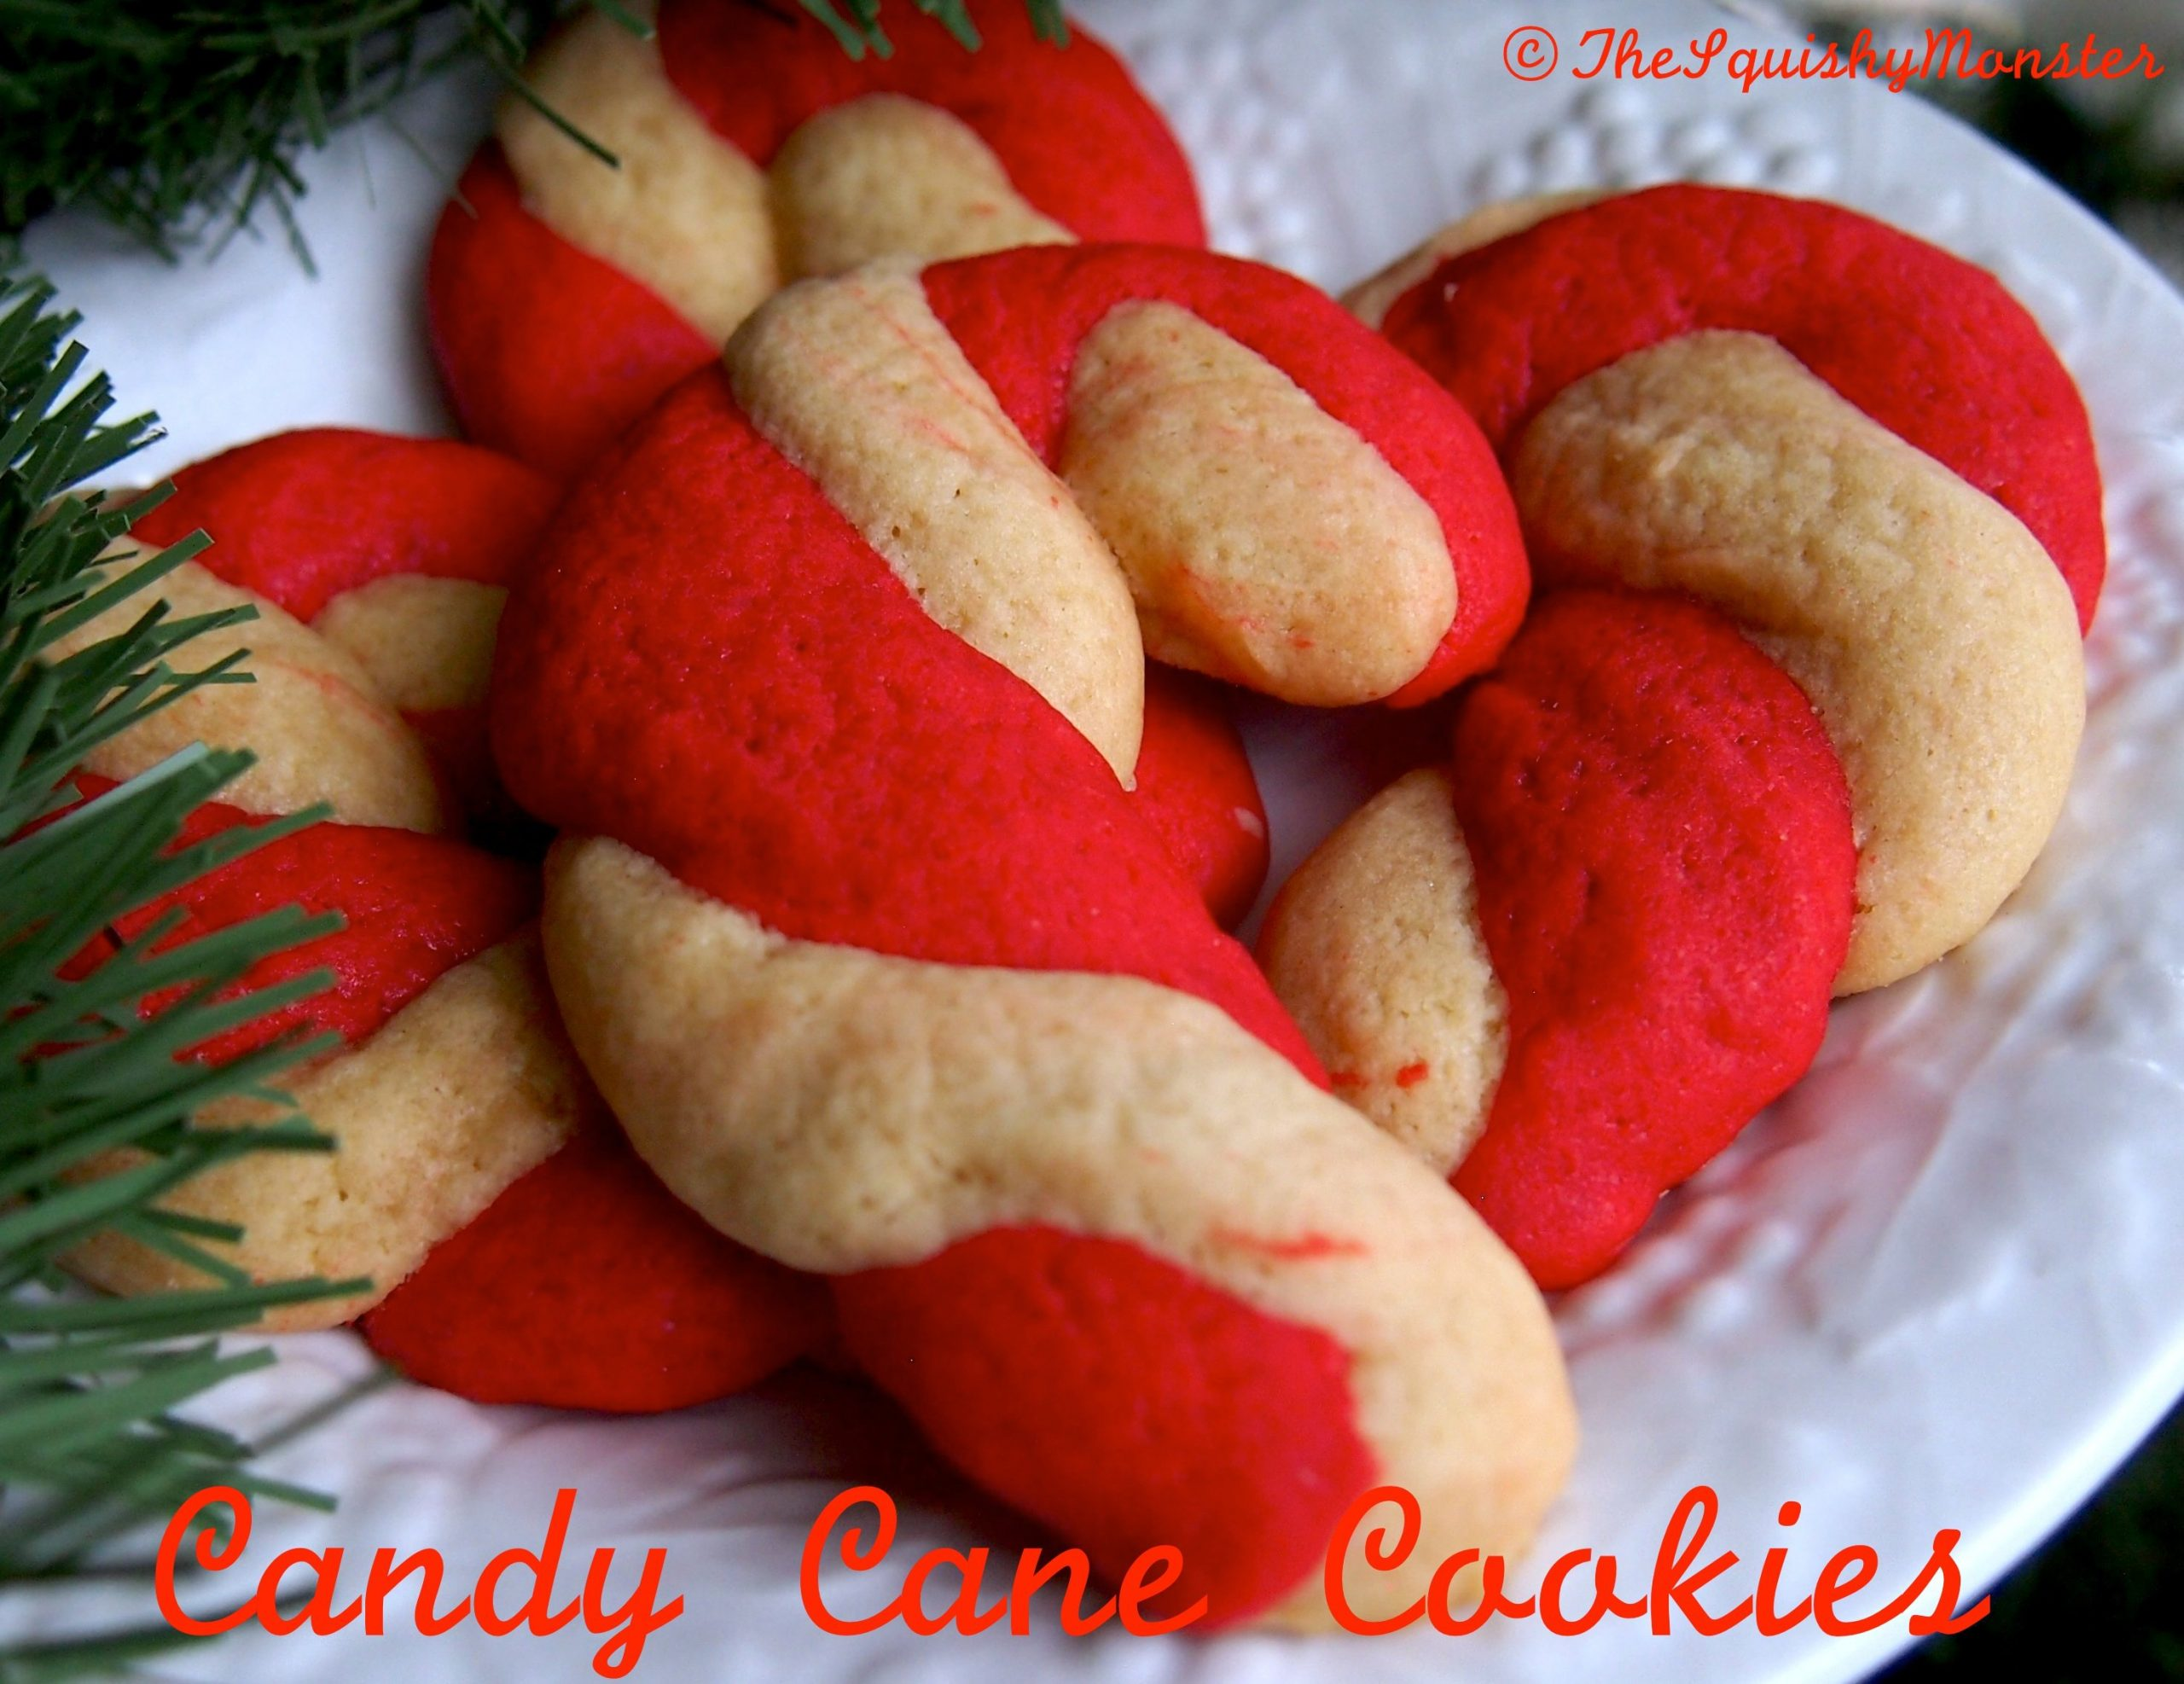 candy-cane-cookies-2